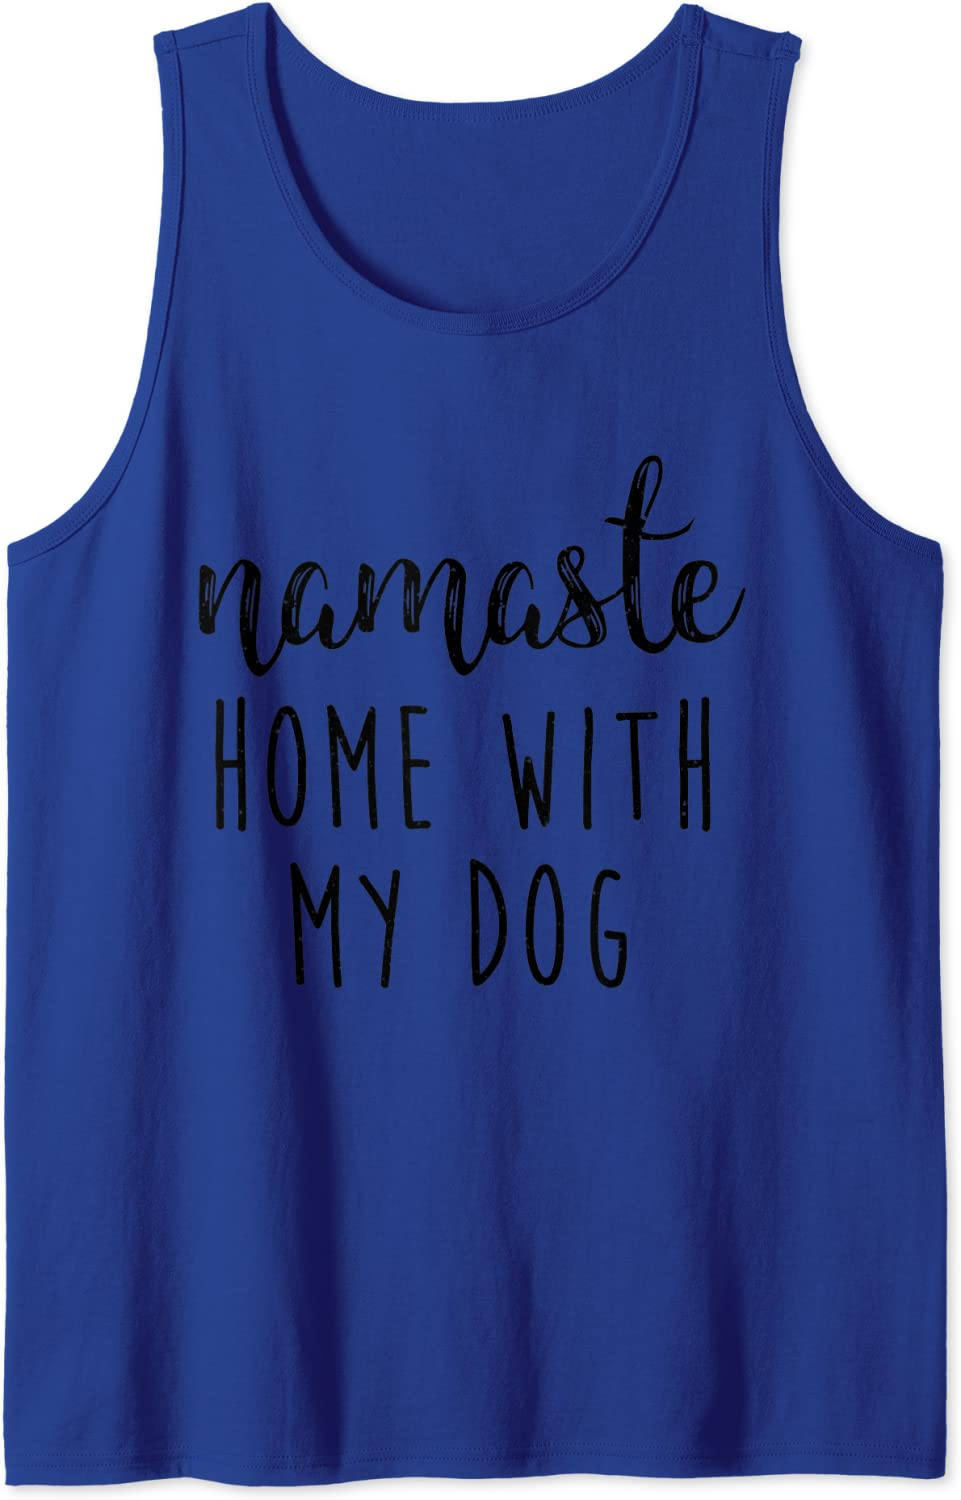 Yoga Zen Namaste Home With My Dog, Funny Yoga Lover Gift Tank Top